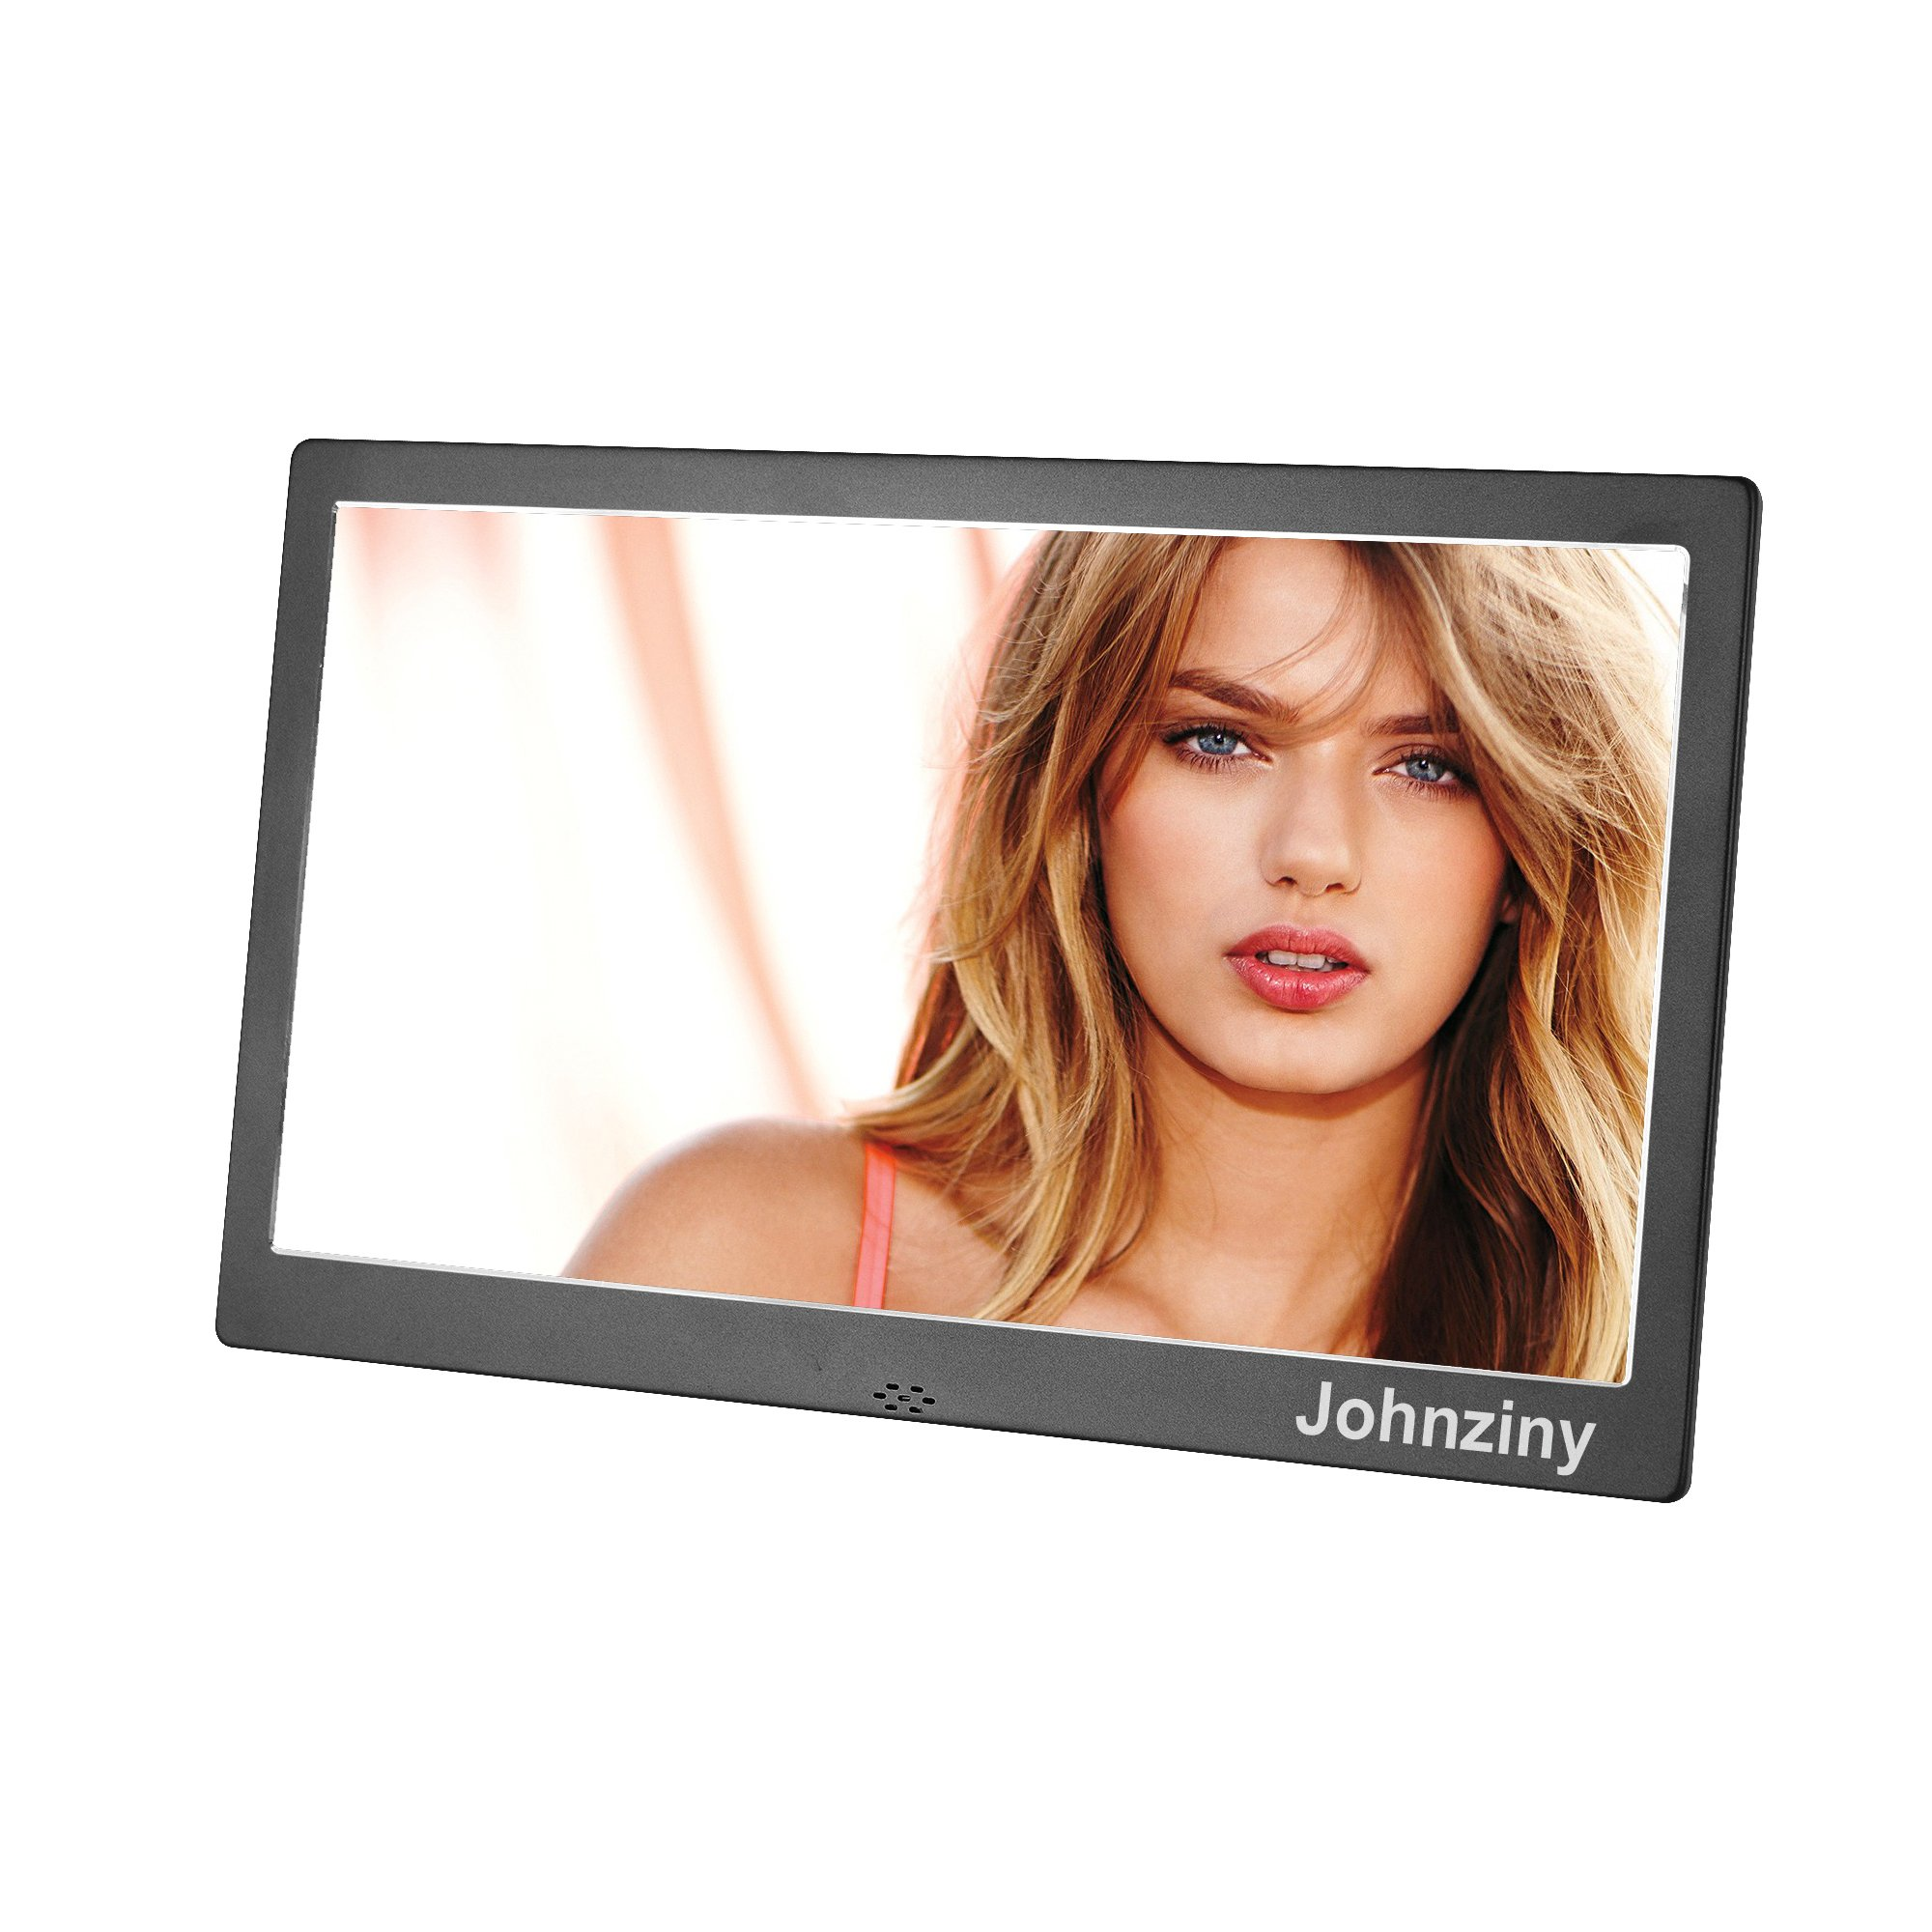 Digital Picture Frame 10 inch Metal Digital Photo Frame 1024x600 High Resolution Photo/Music/Video Player,with Remote Control/Calendar/12 Languages,USB/SD/MMC/MS Card Port by Johnziny (Image #2)